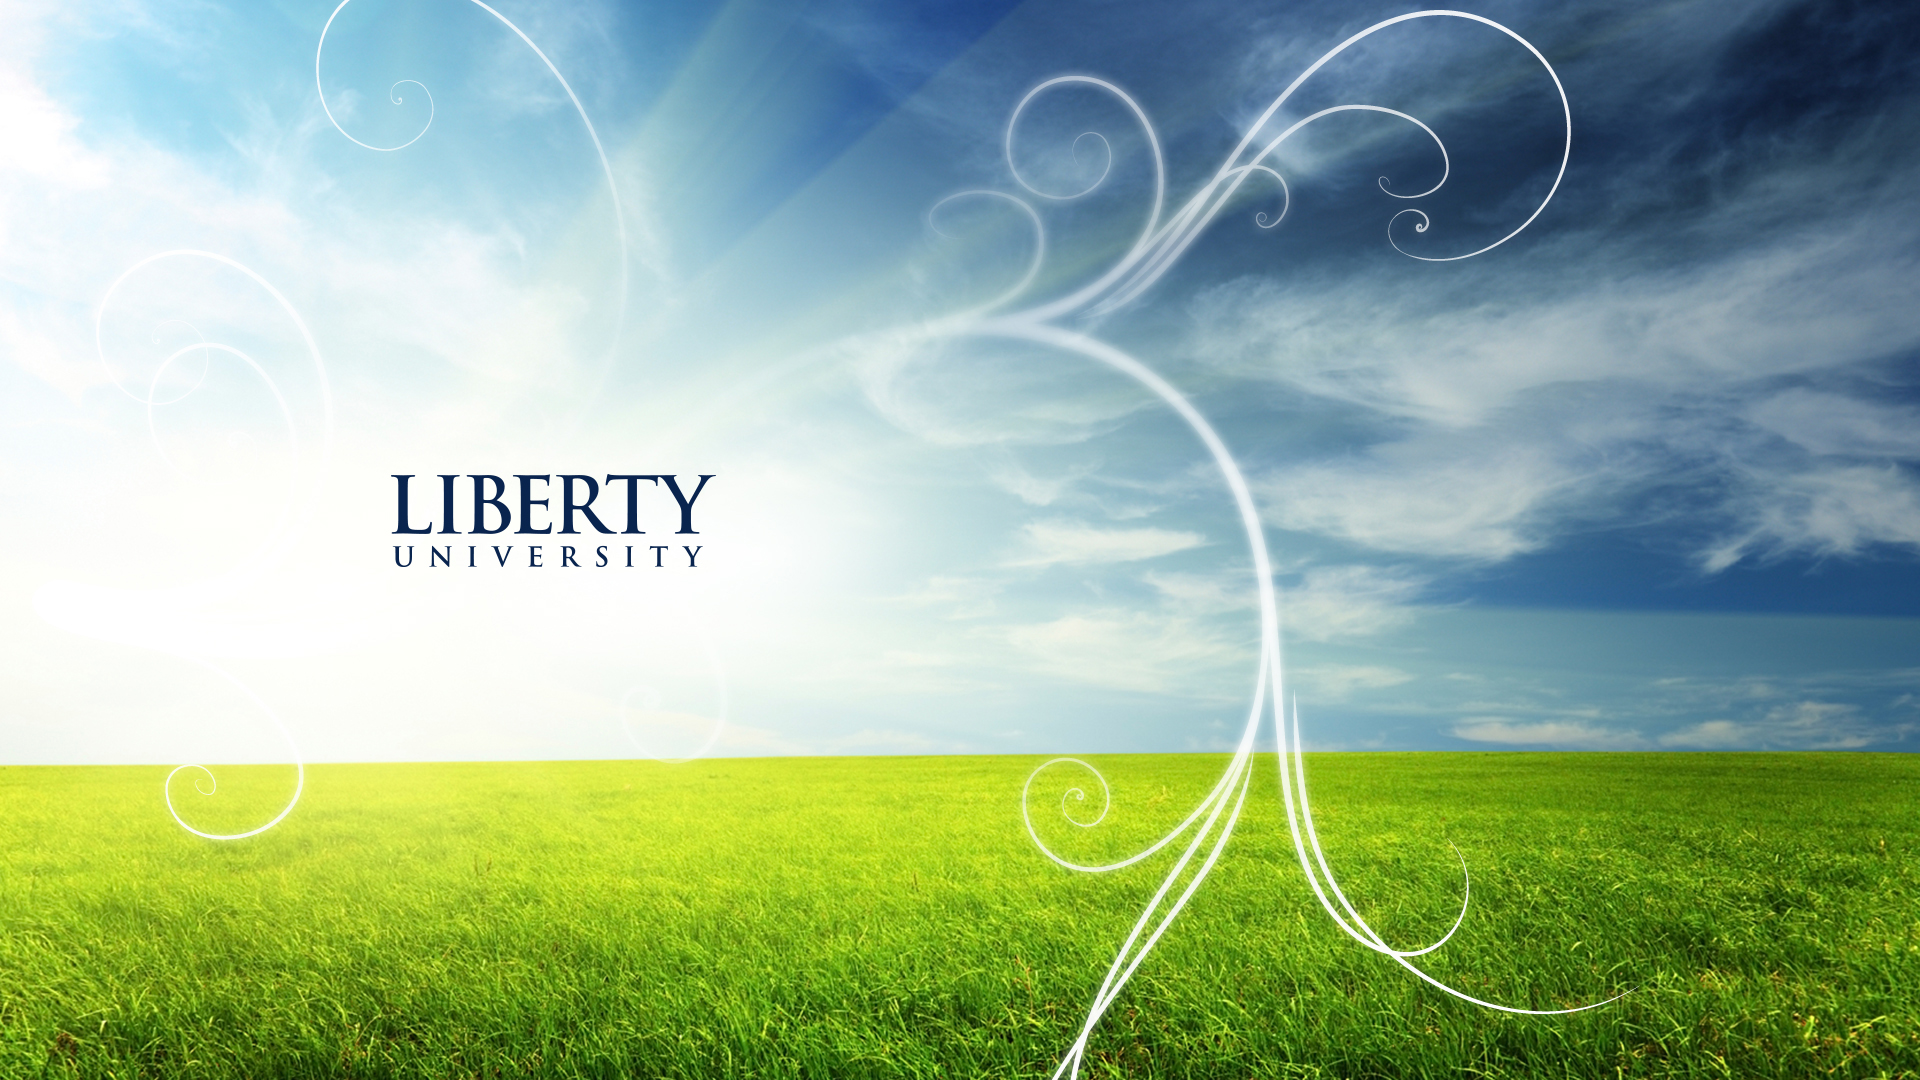 Background Images Marketing Department Liberty University